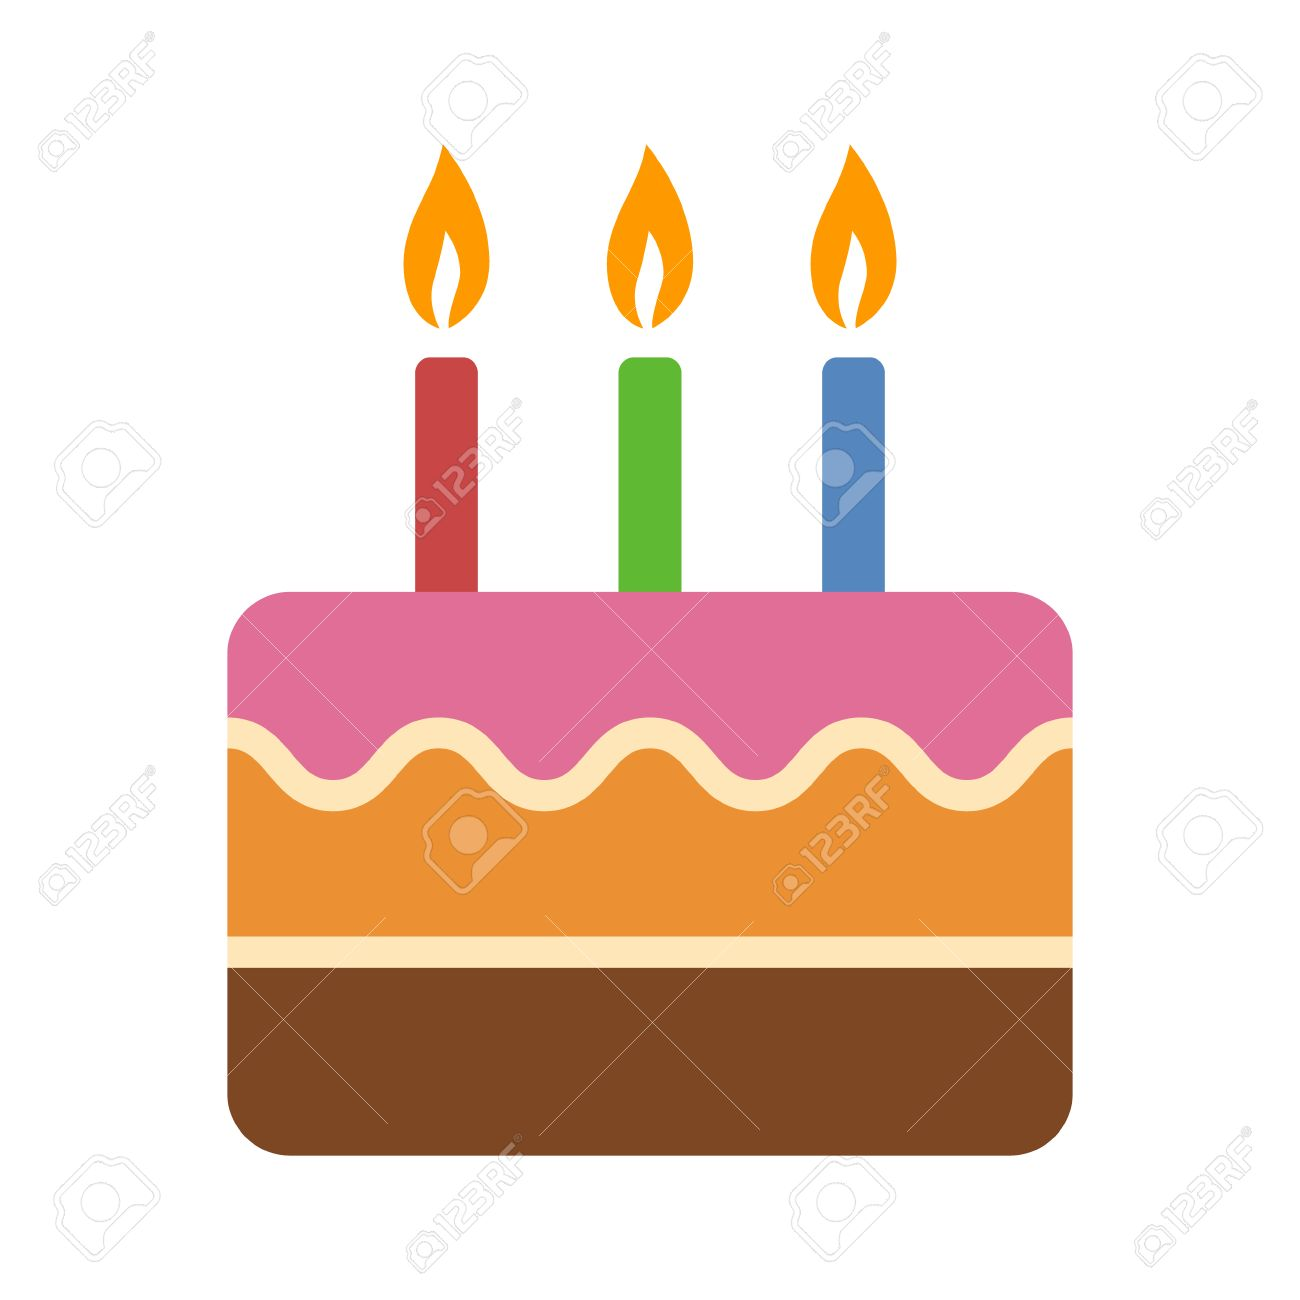 Layered Colorful Birthday Cake With Candles Flat Icon For Food